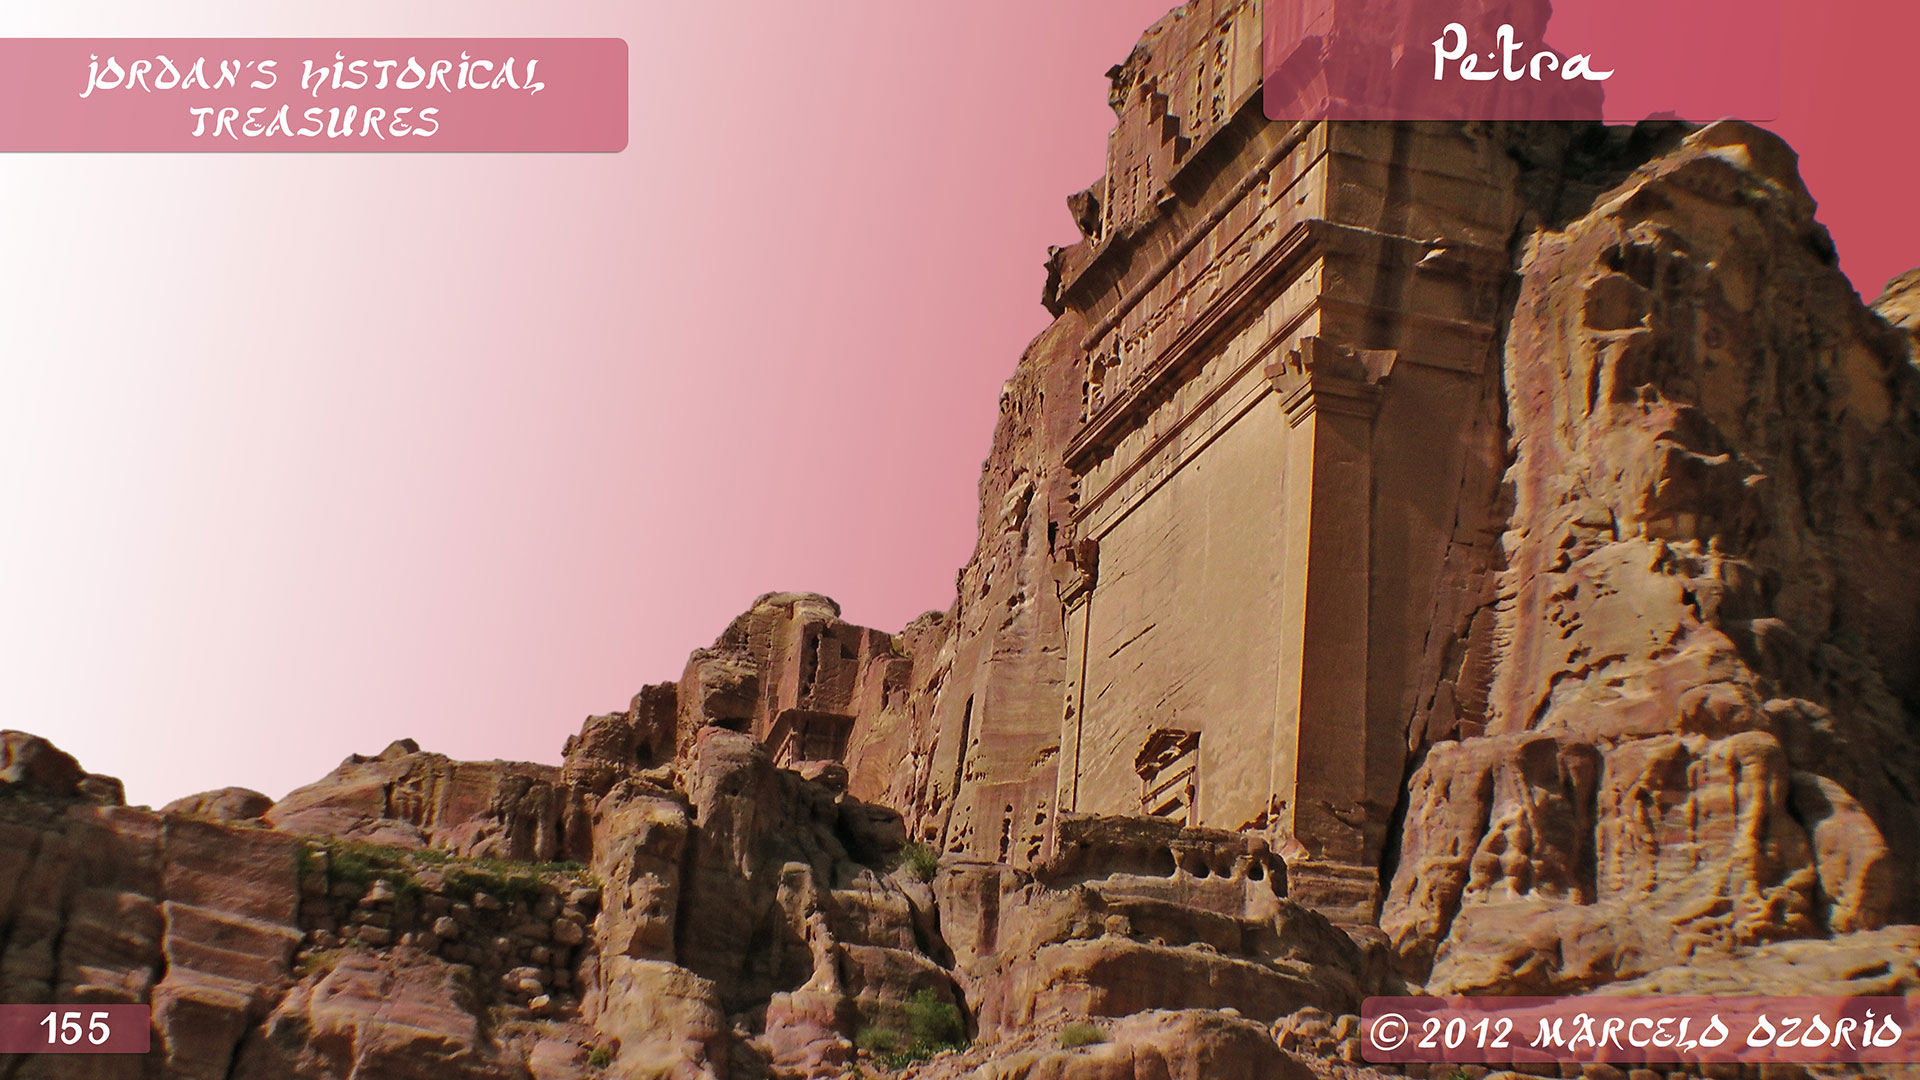 Petra Archaeological City Jordan 75 - The Astonishing Treasure at Petra - Jordan